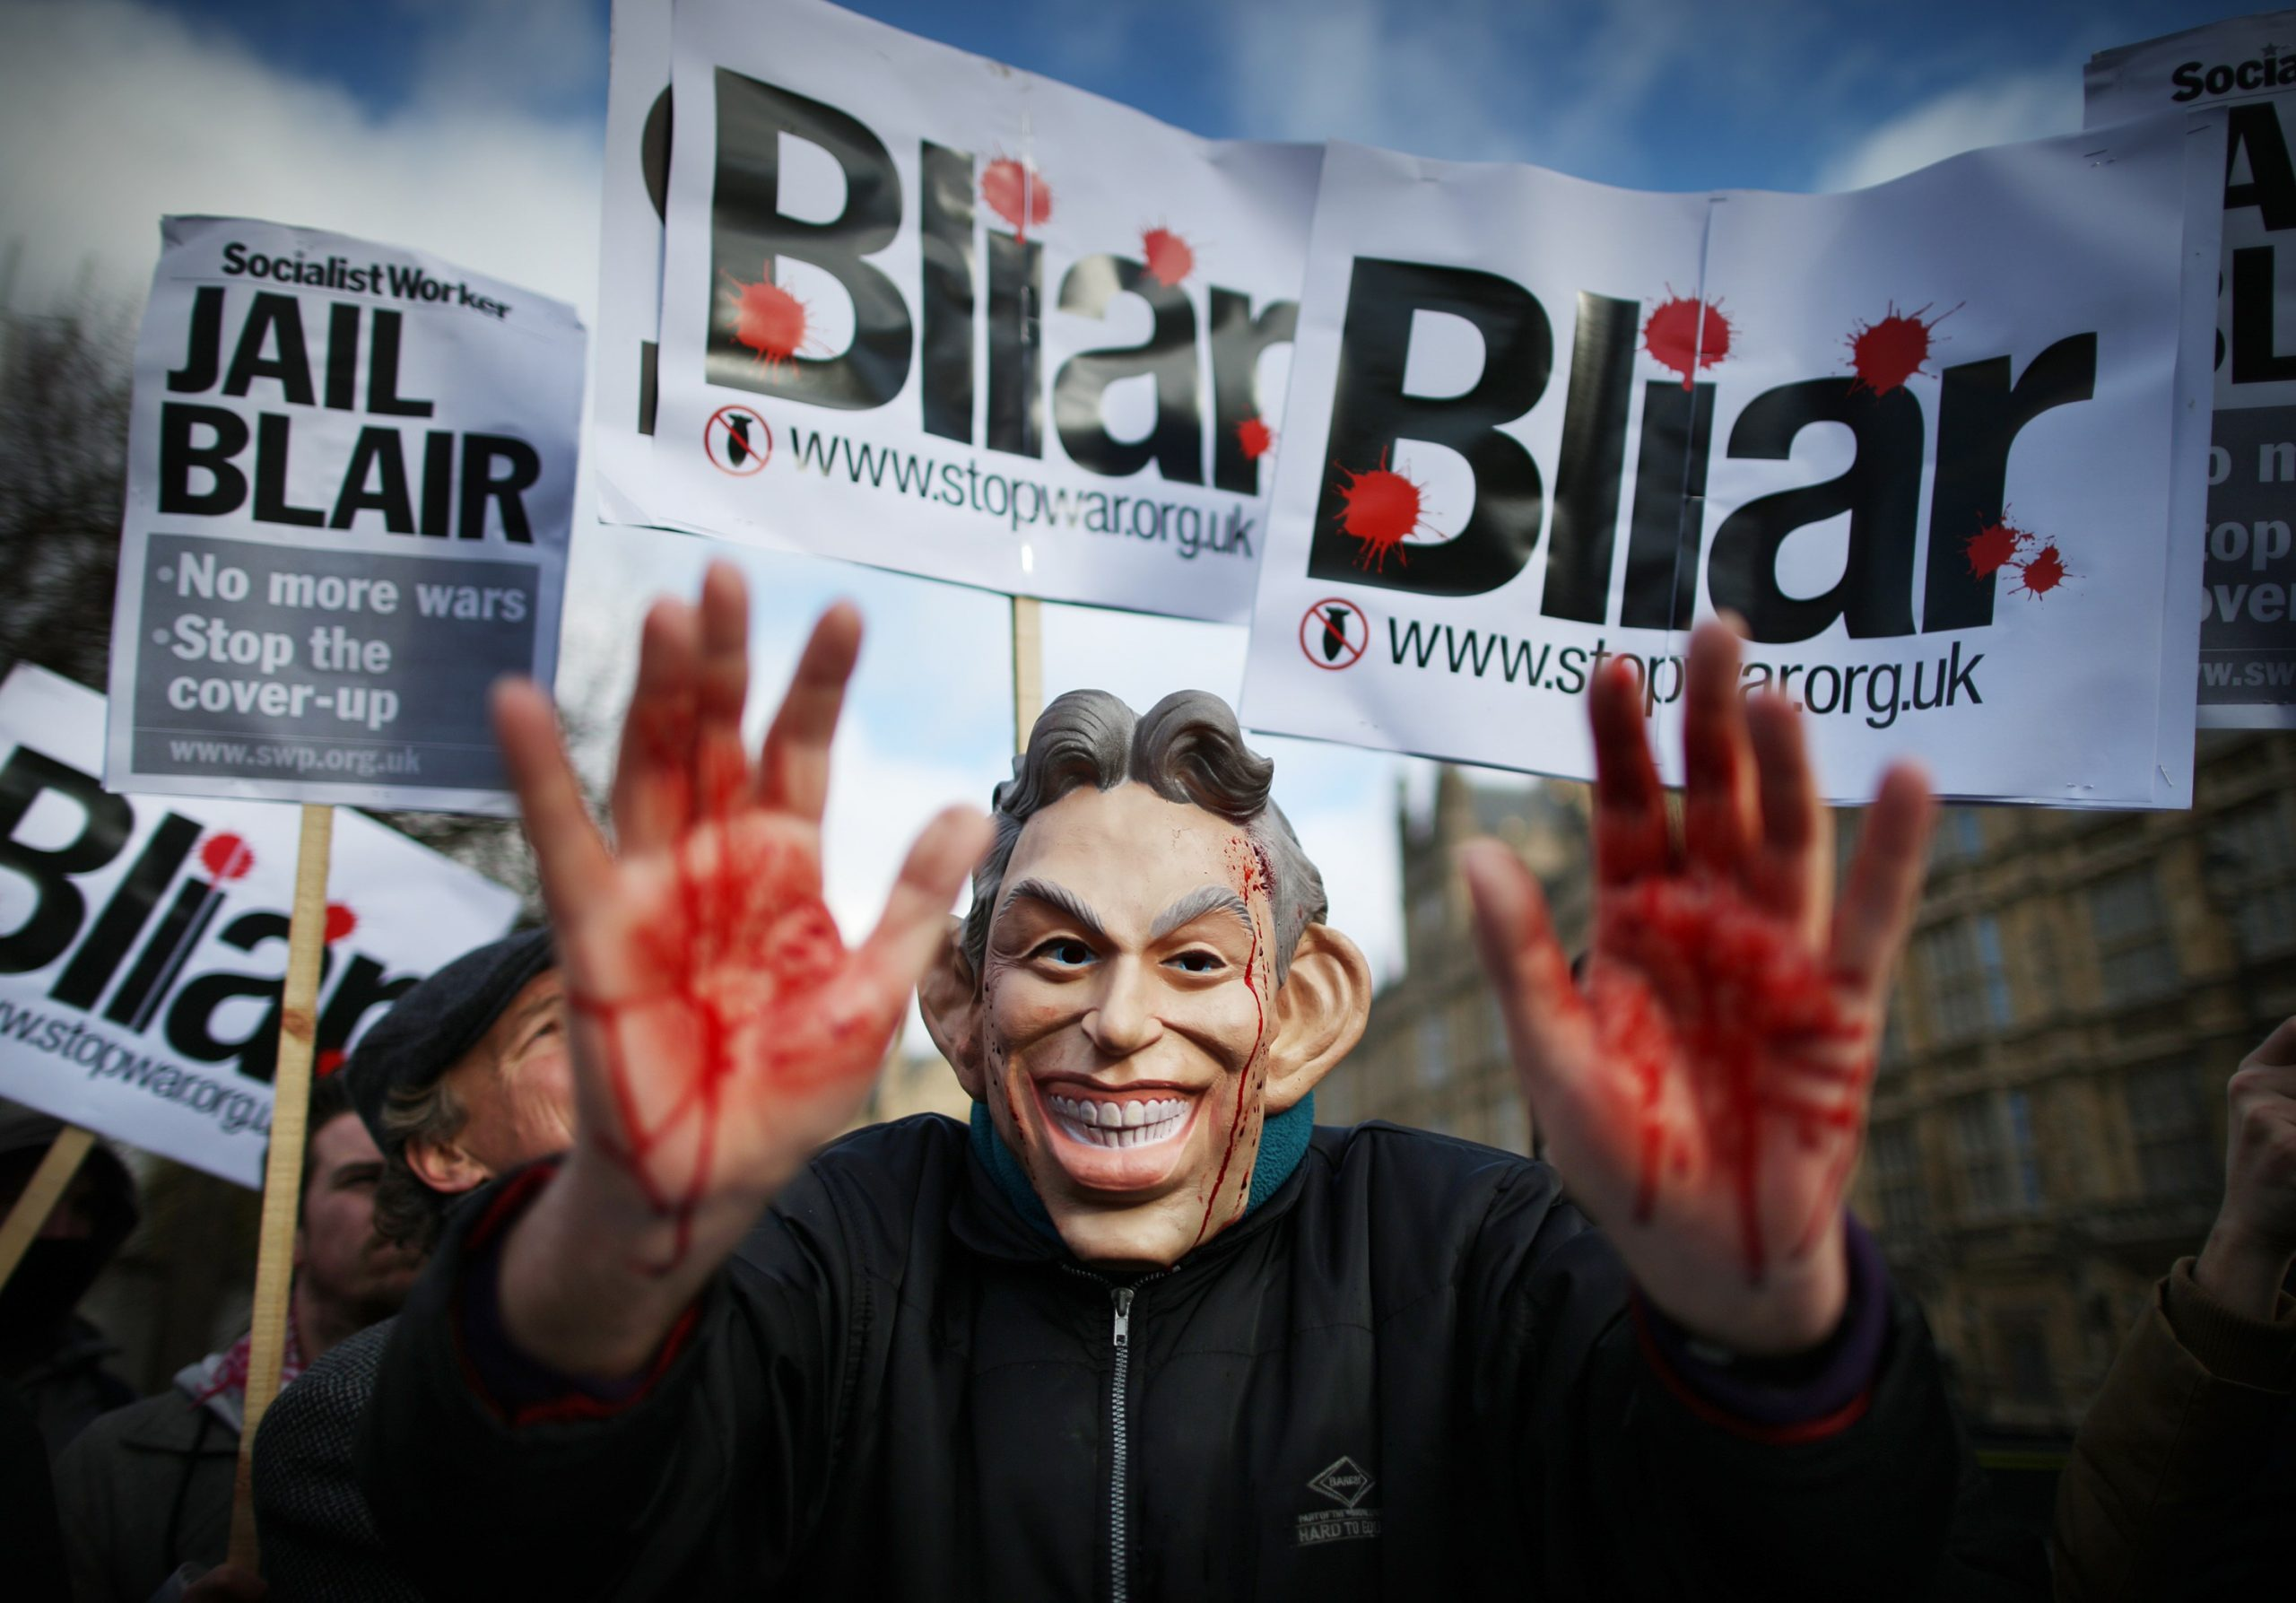 Blair is the career criminal who refuses to fade away